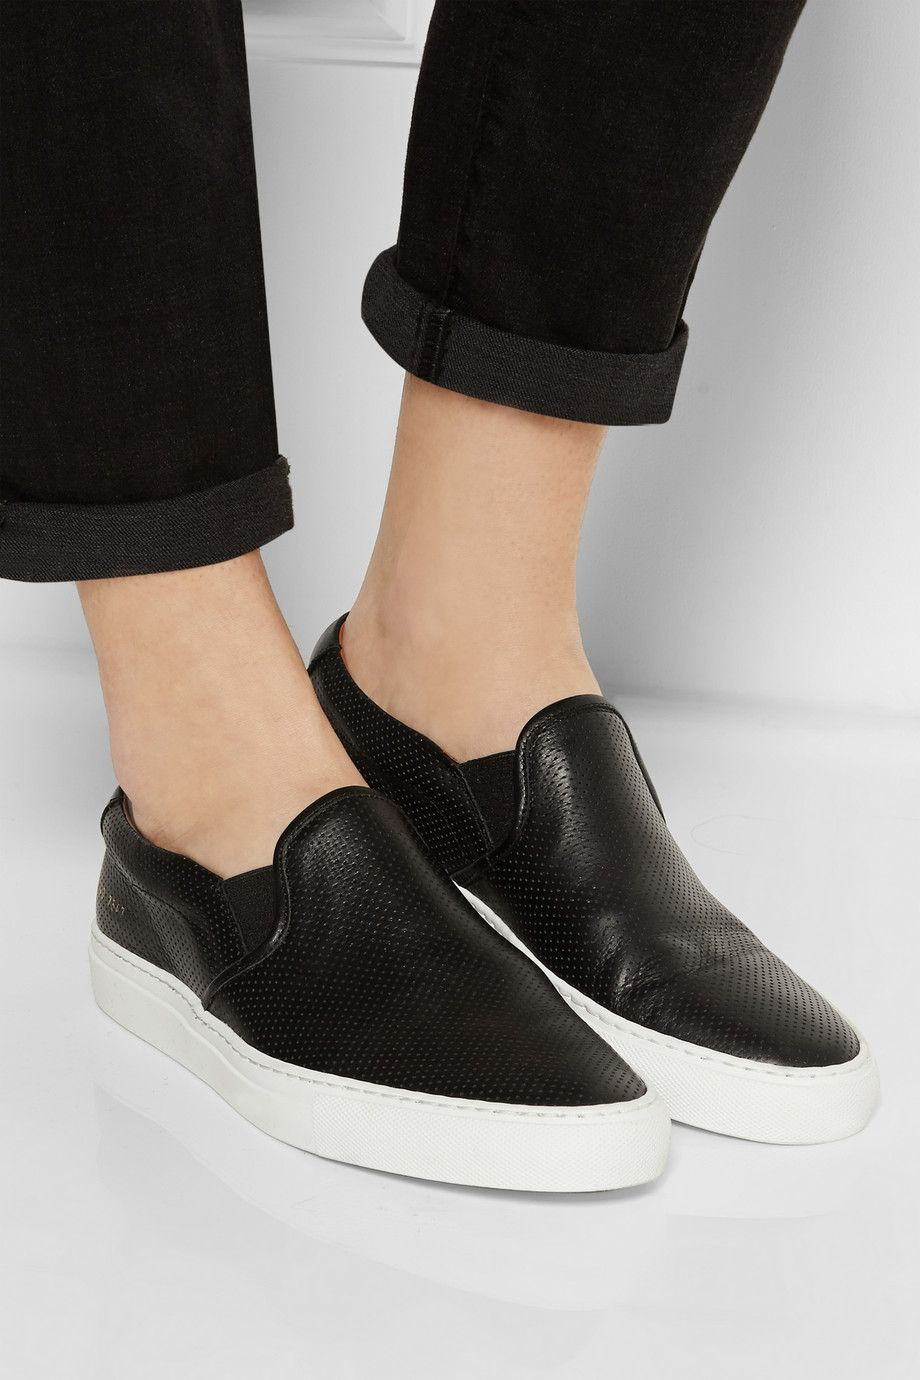 Perforated leather slip-on sneakers